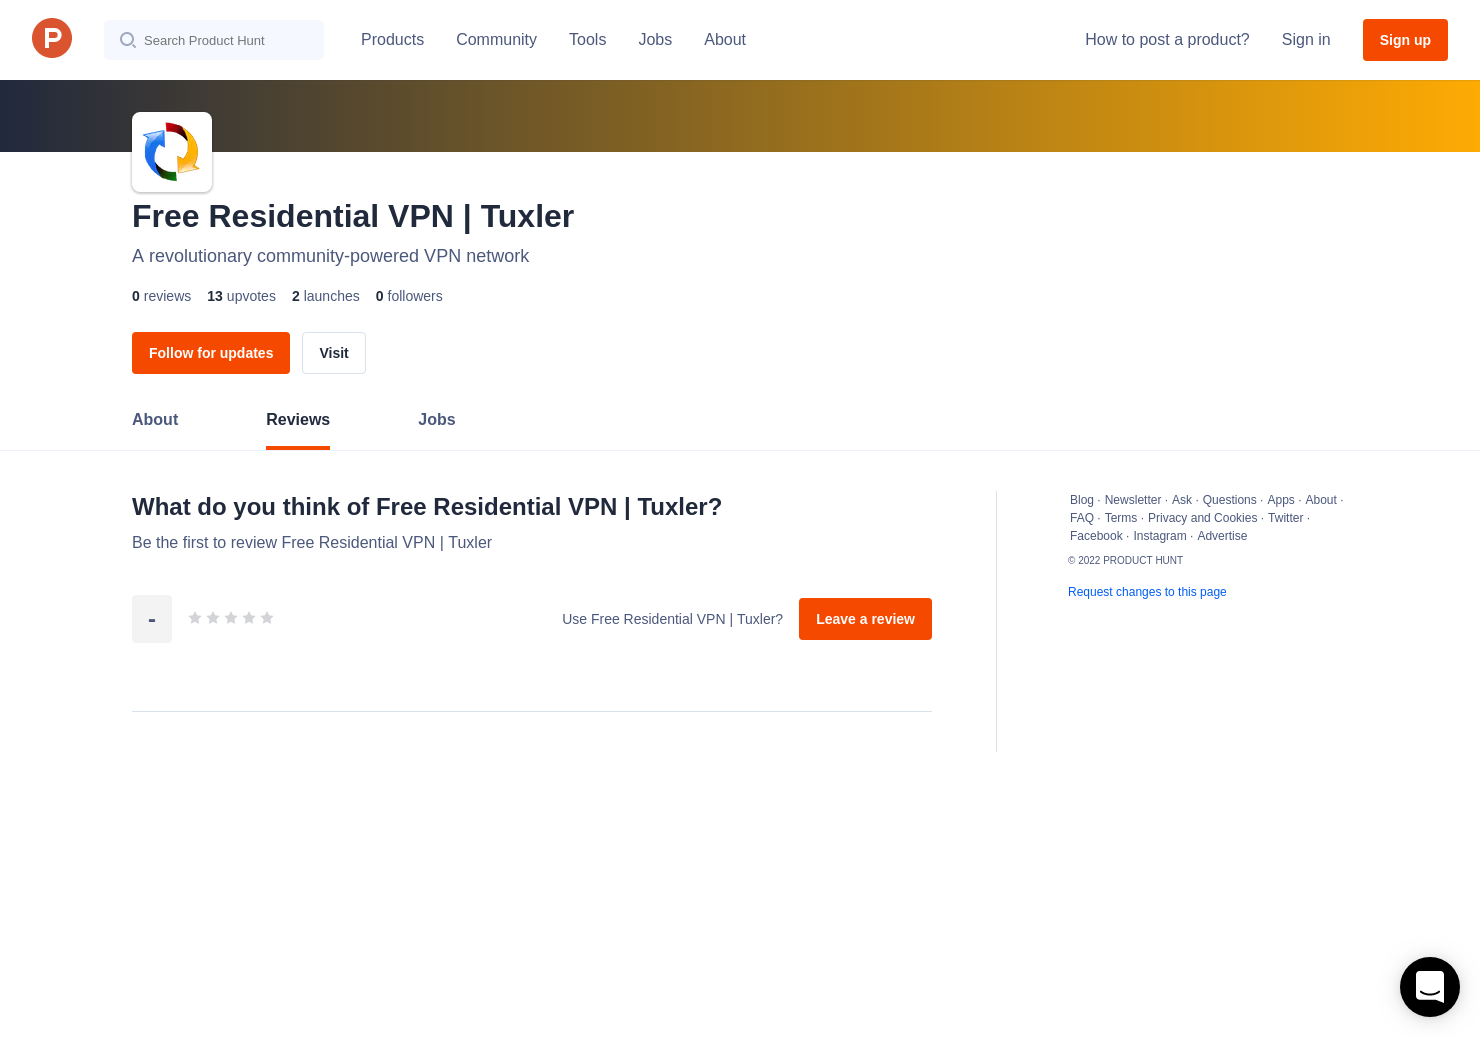 Free Residential VPN | Tuxler Reviews - Pros, Cons and Rating